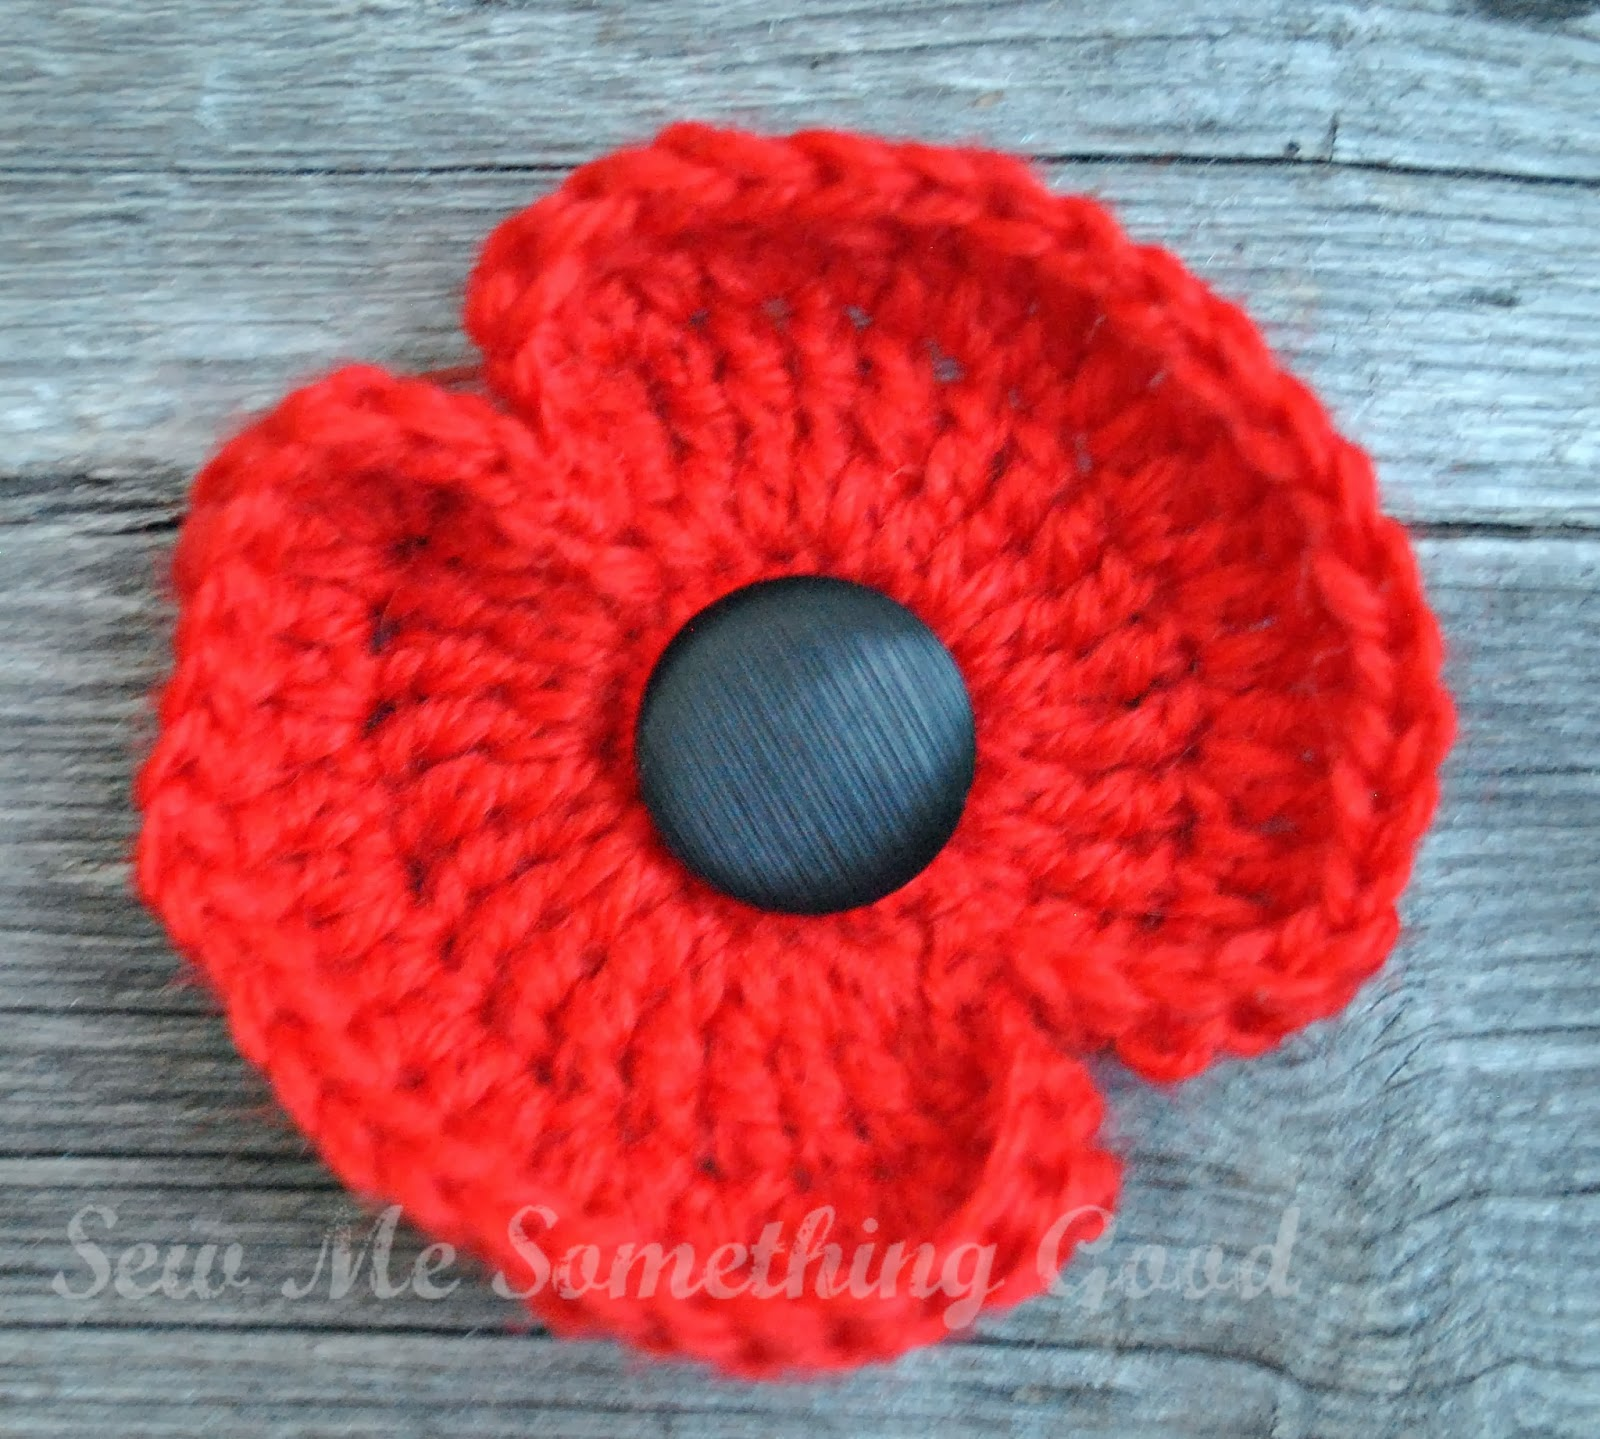 Knitting Pattern For Poppy Brooch : Sew Me Something Good: A handmade reminder